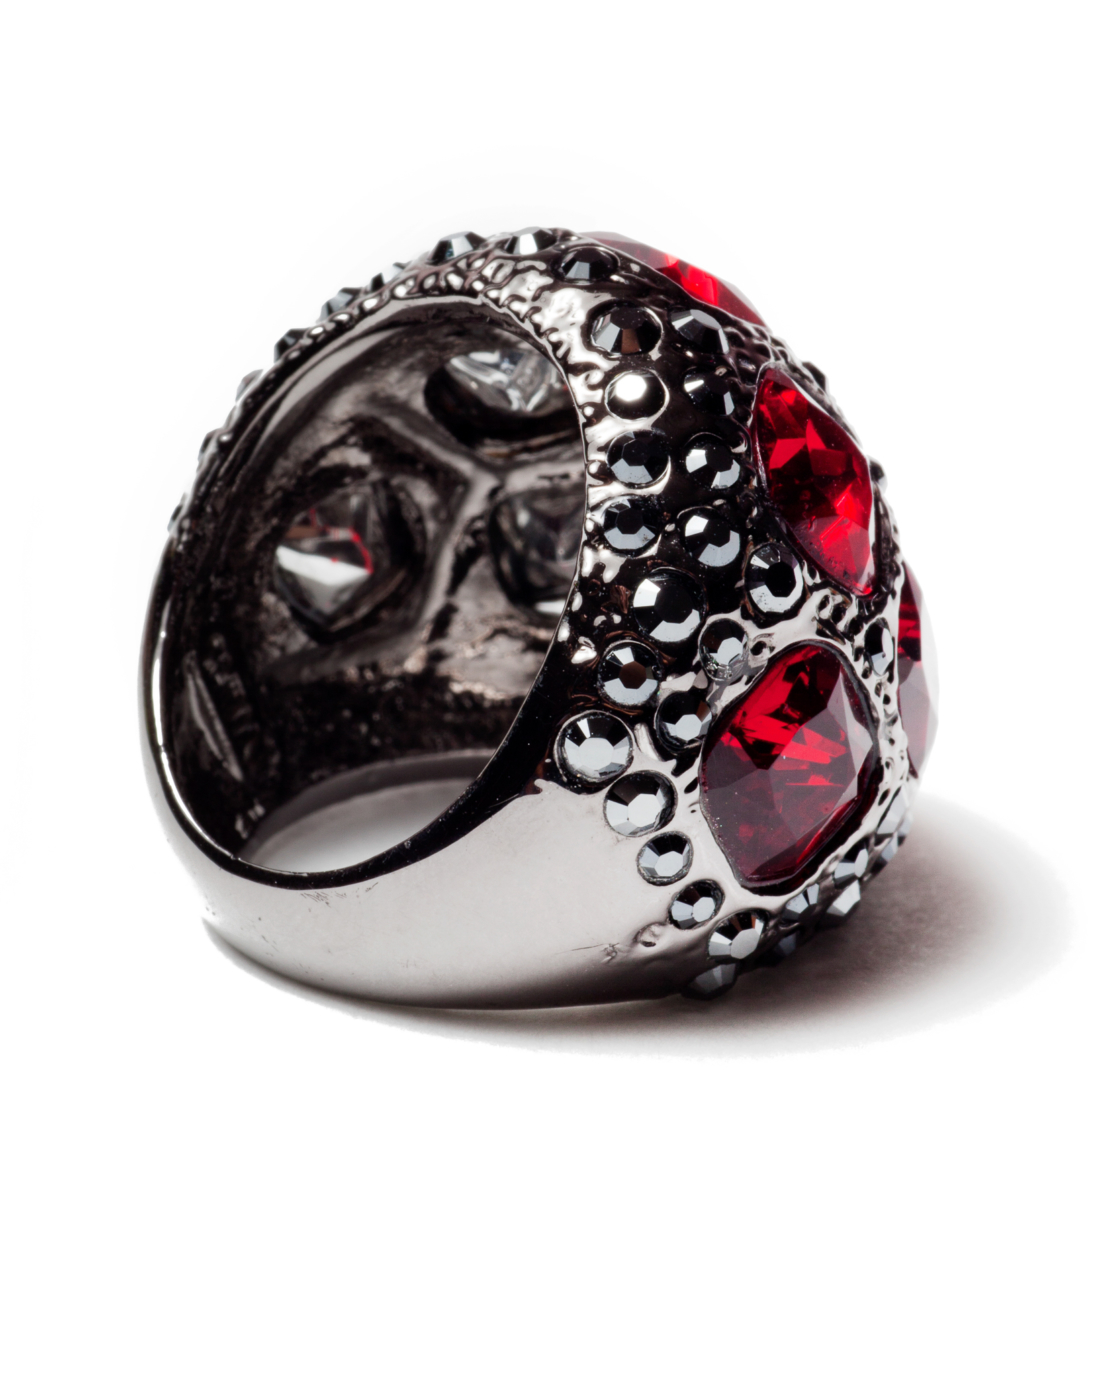 Sparkling Rebel Red and Gunmetal Ring, circa 1980's